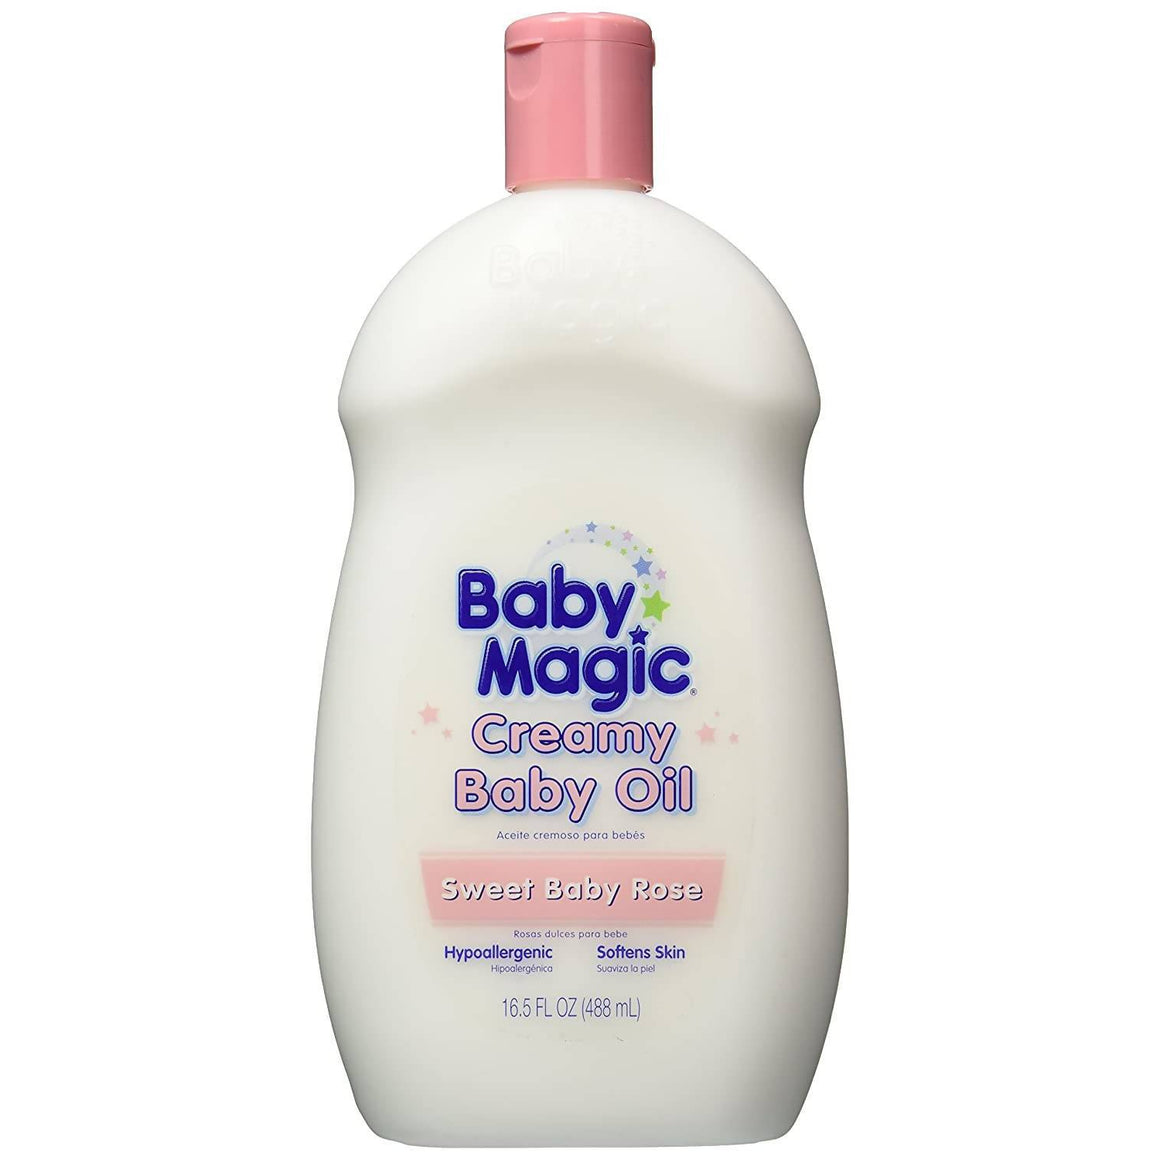 Baby Magic Creamy Baby Oil Sweet Baby Rose